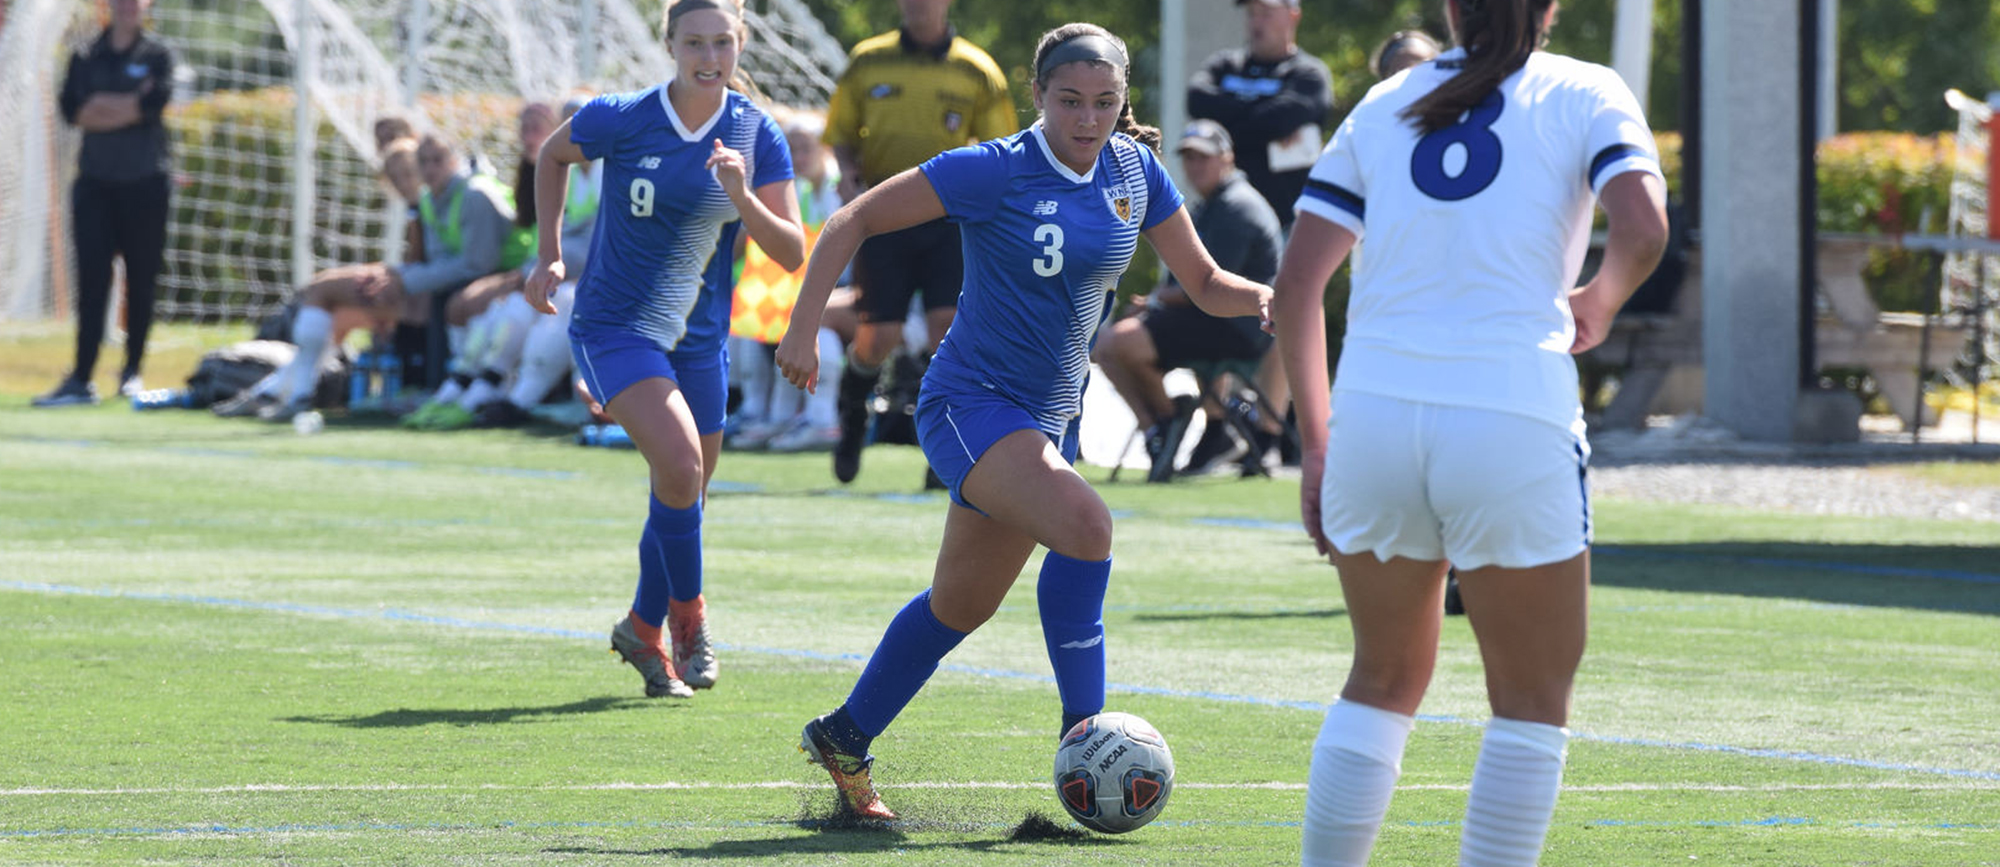 Sophomore Morgan Smith scored two goals in Western New England's 3-0 victory over Husson on Sunday at the Courtyard by Marriott Classic. (Photo by Rachael Margossian)